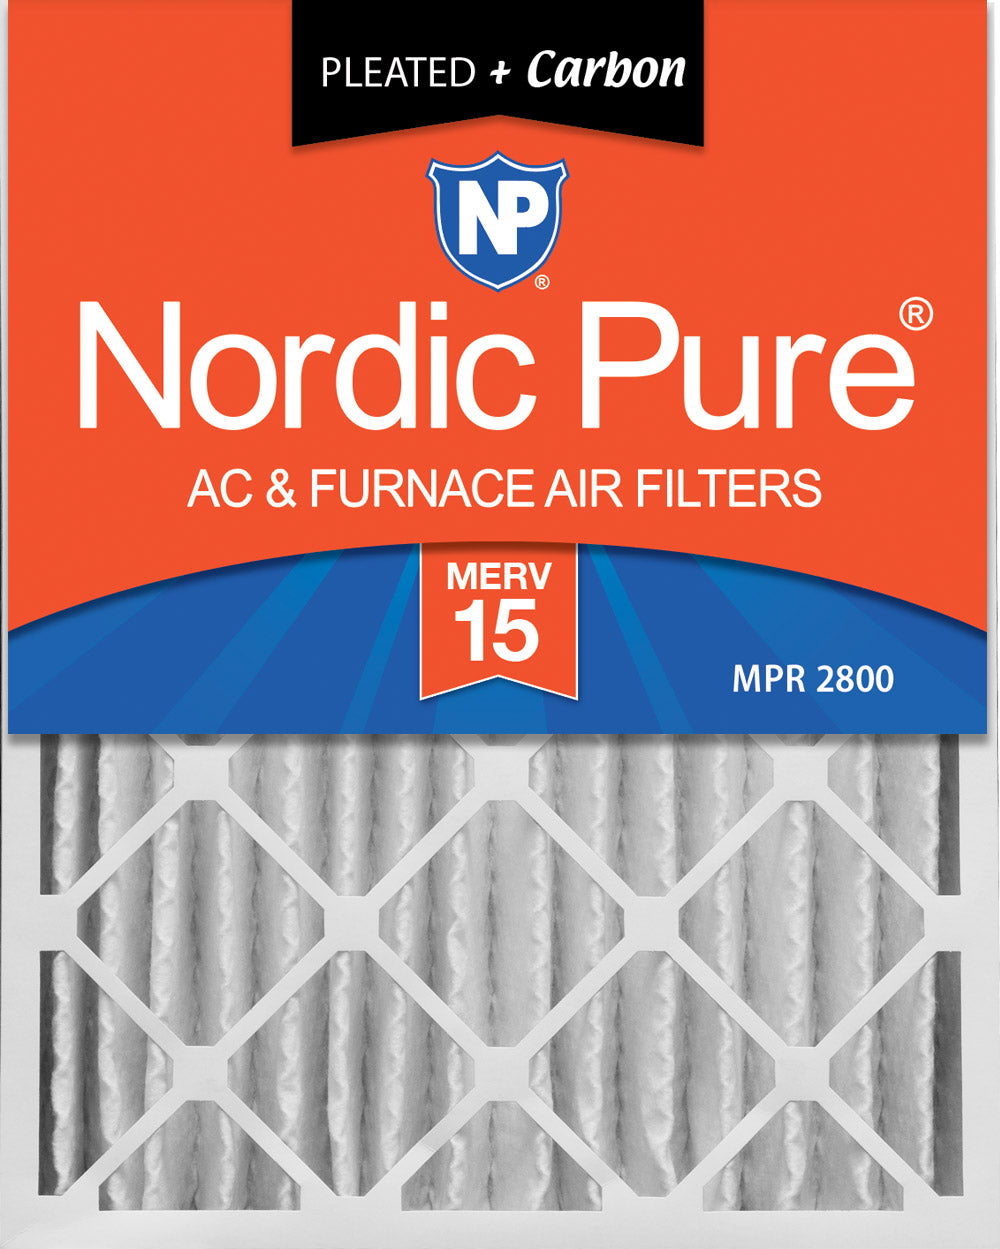 16x20x4 (3 5/8) Pleated Air Filters MERV 15 Plus Carbon 2 Pack